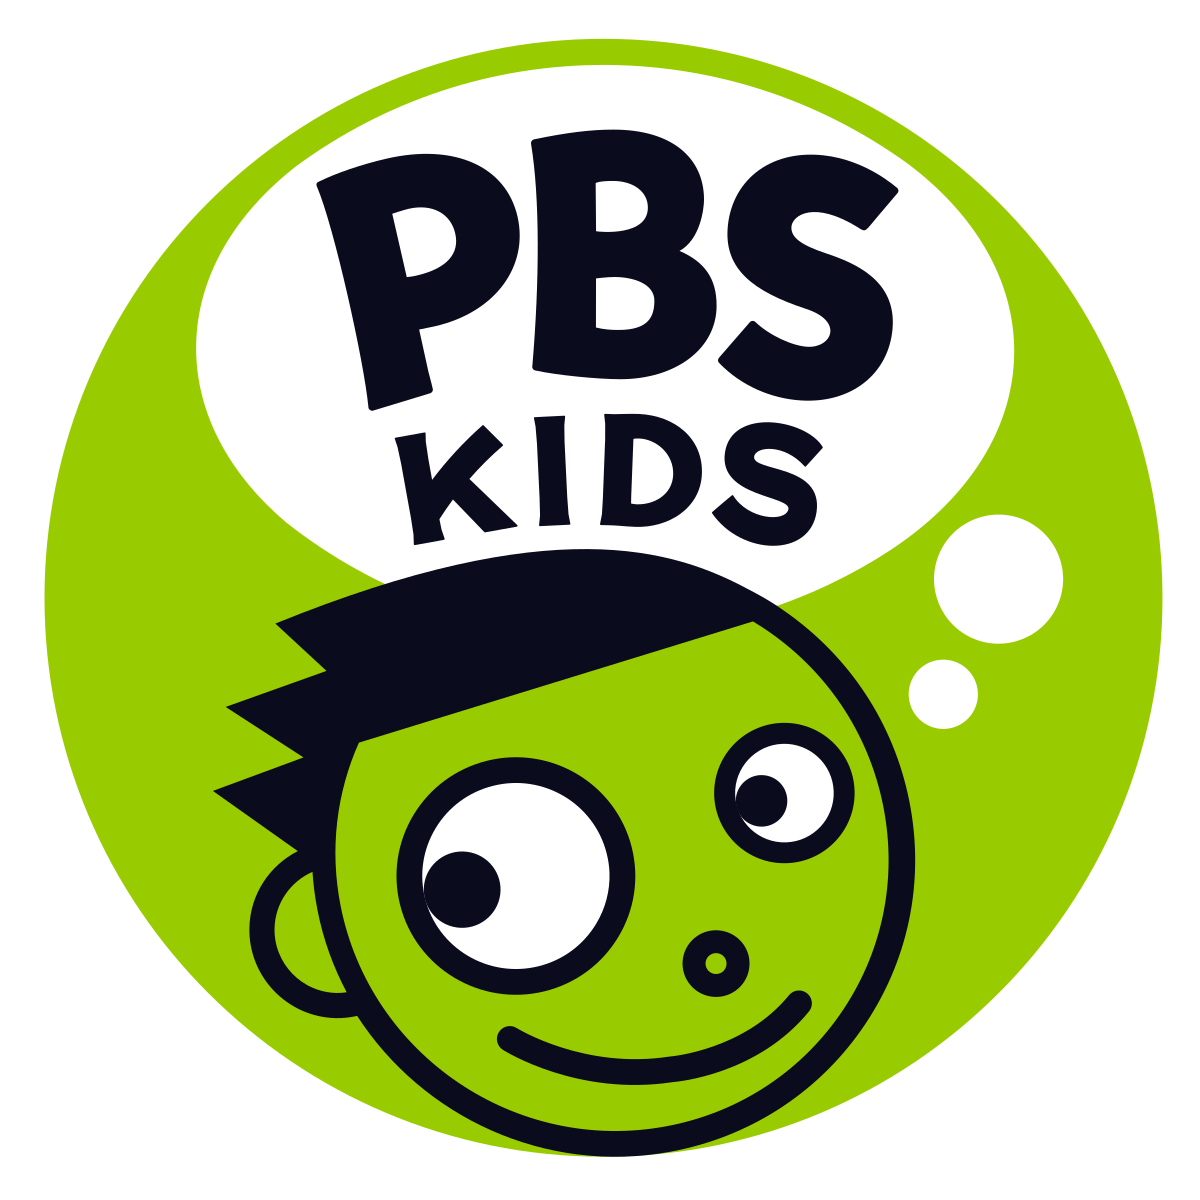 pbs kids - Educational games and videos from Curious George, Wild Kratts and other PBS KIDS shows!